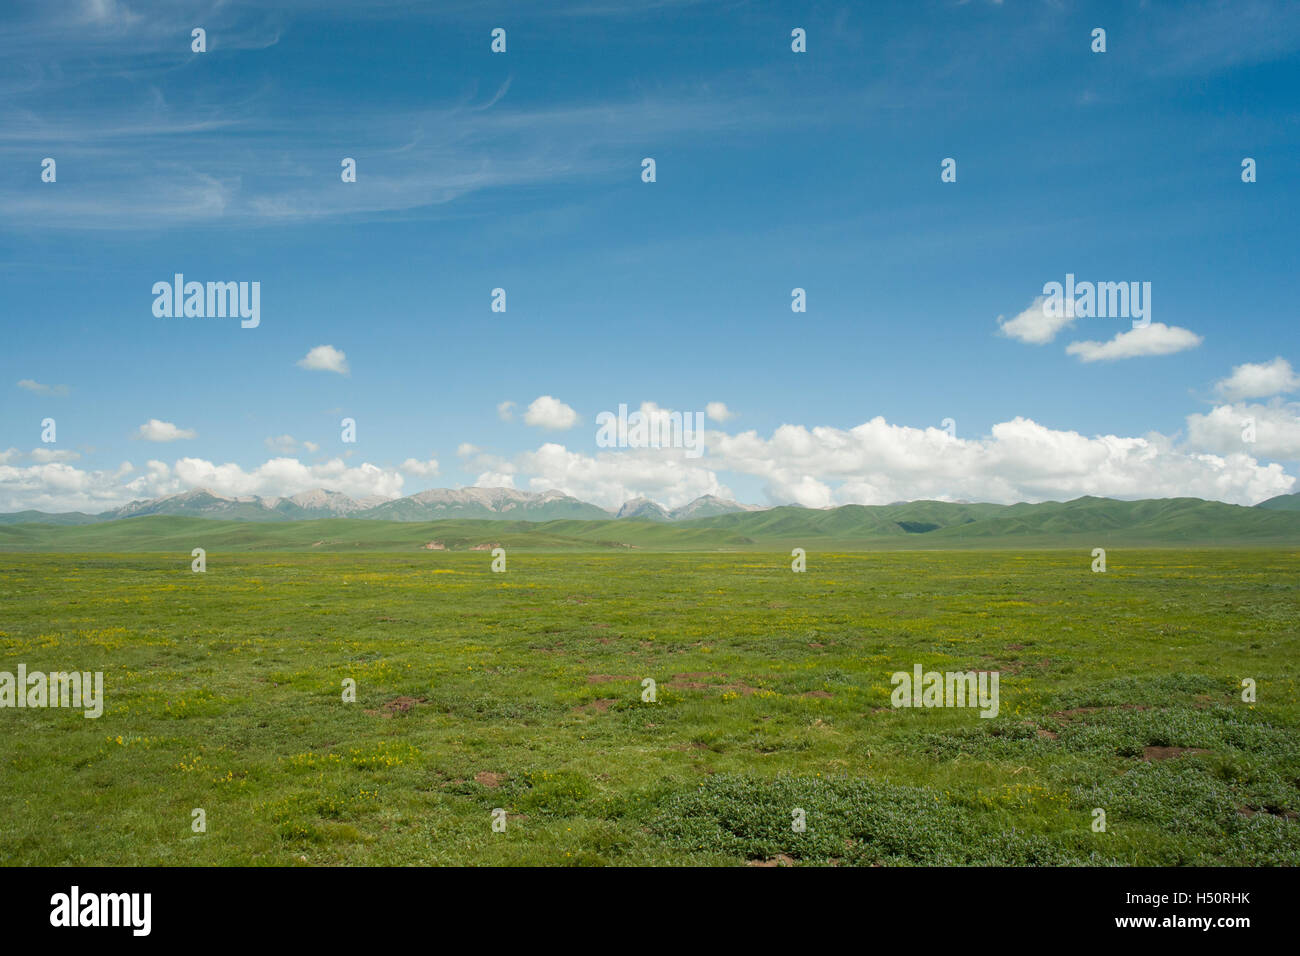 Zoige grassland in Sichuan, China - Stock Image